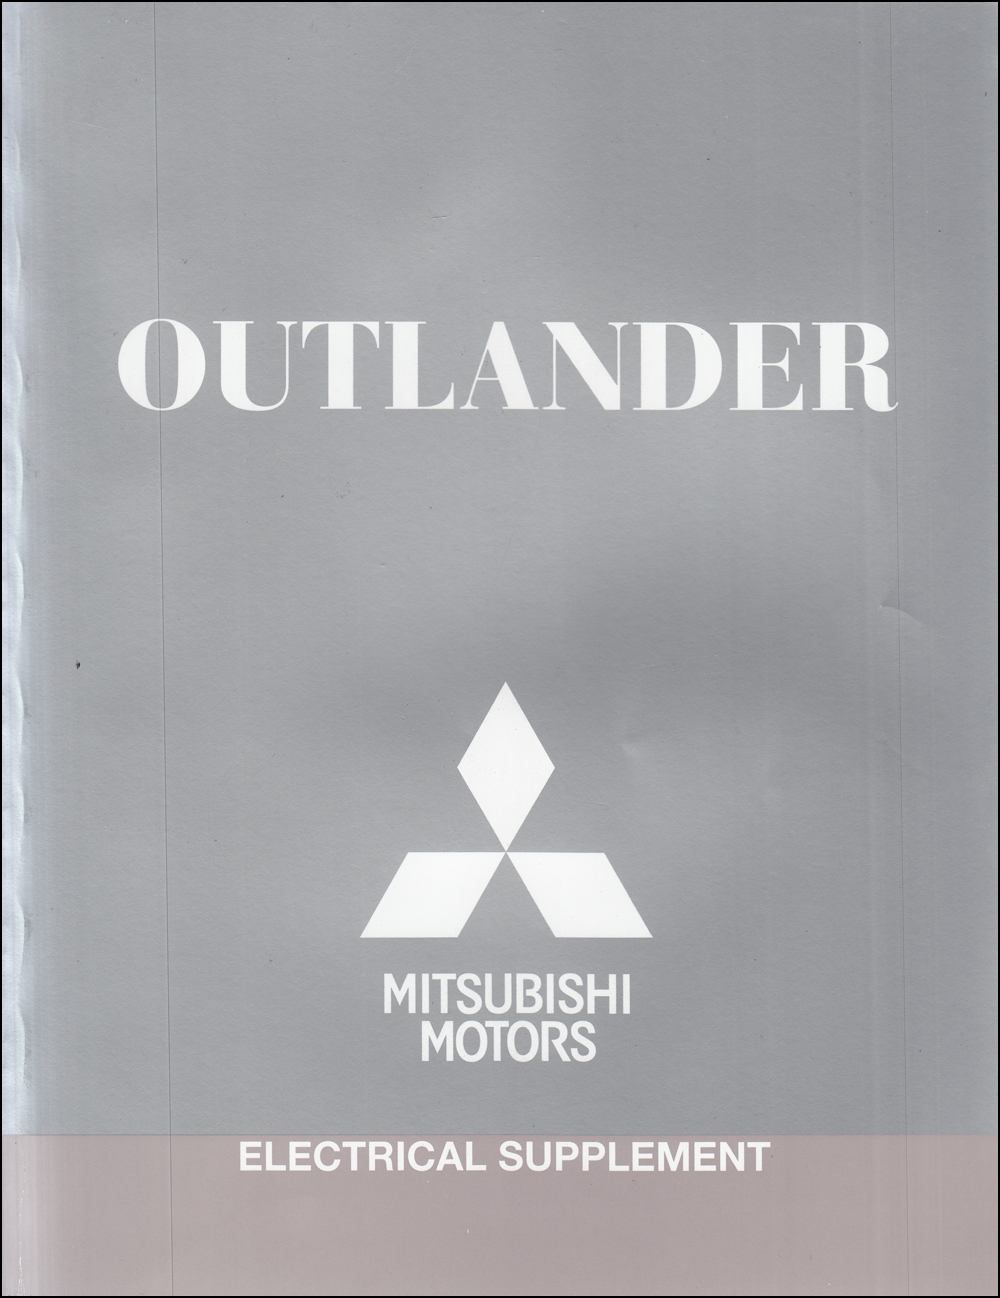 [DIAGRAM_38YU]  2015 Mitsubishi Outlander Sport Wiring Diagram Manual Original | 2015 Mitsubishi Outlander Wiring Diagram |  | Faxon Auto Literature